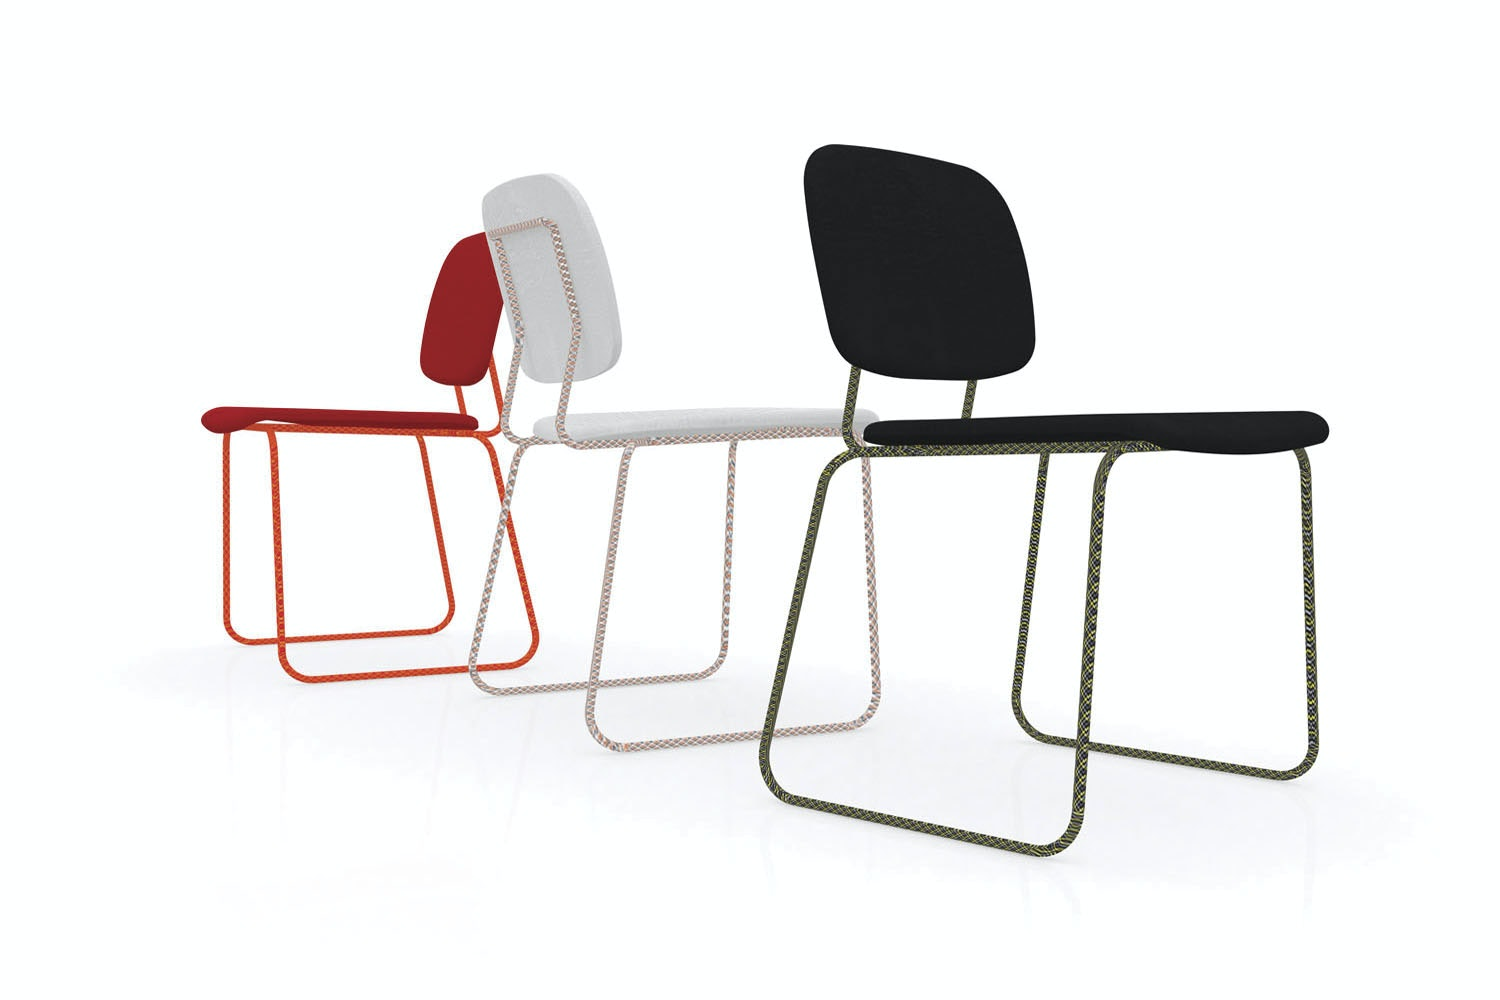 Vica Chair by Bertjan Pot for Moooi